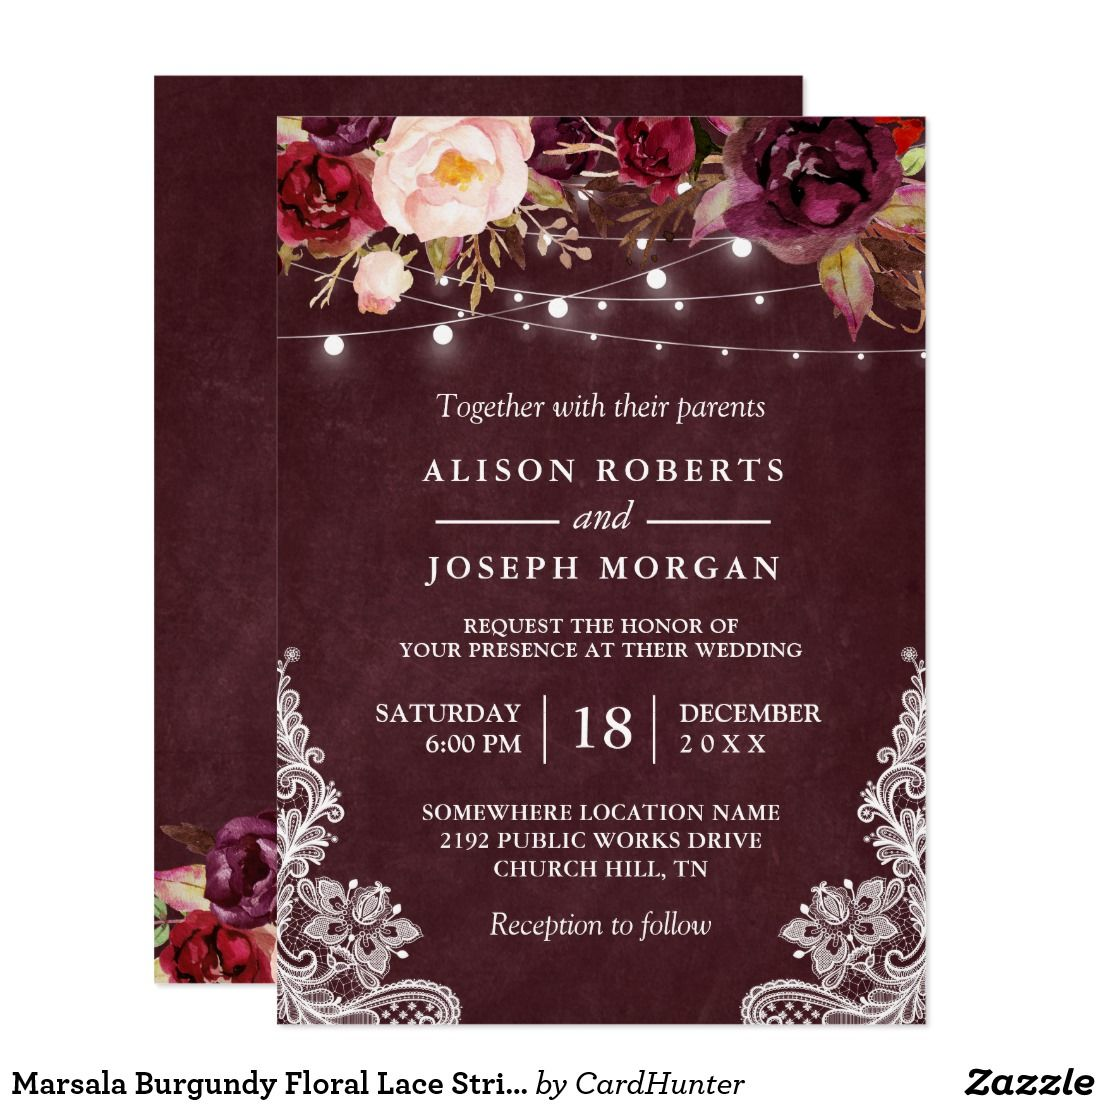 77d554c153c Marsala Burgundy Floral Lace String Lights Wedding Invitation ...